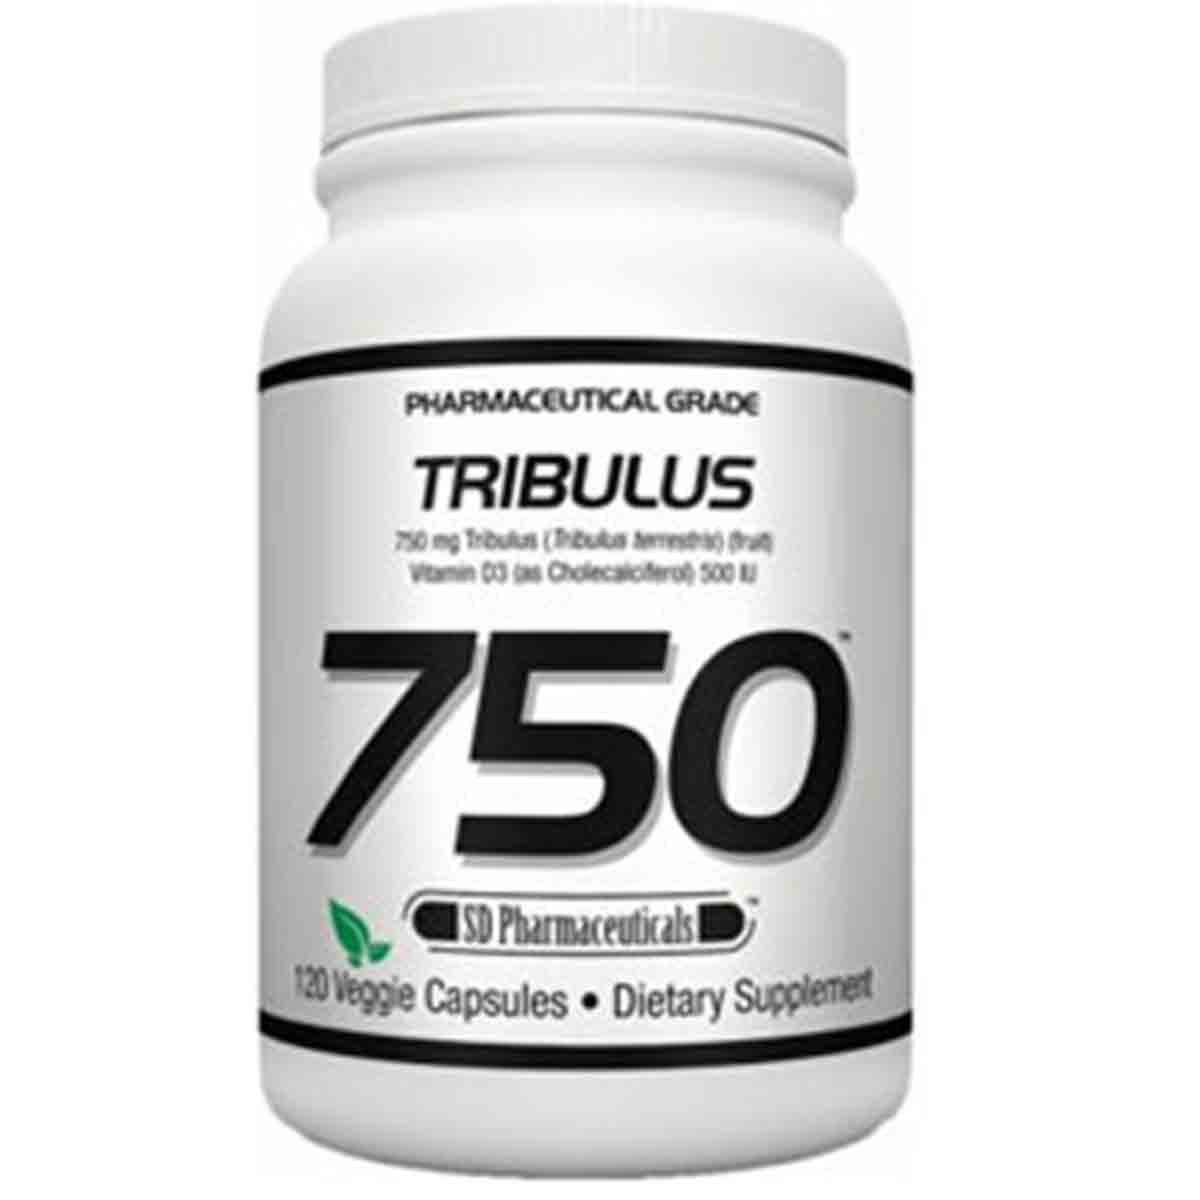 SD Pharmaceuticals Tribulus 750